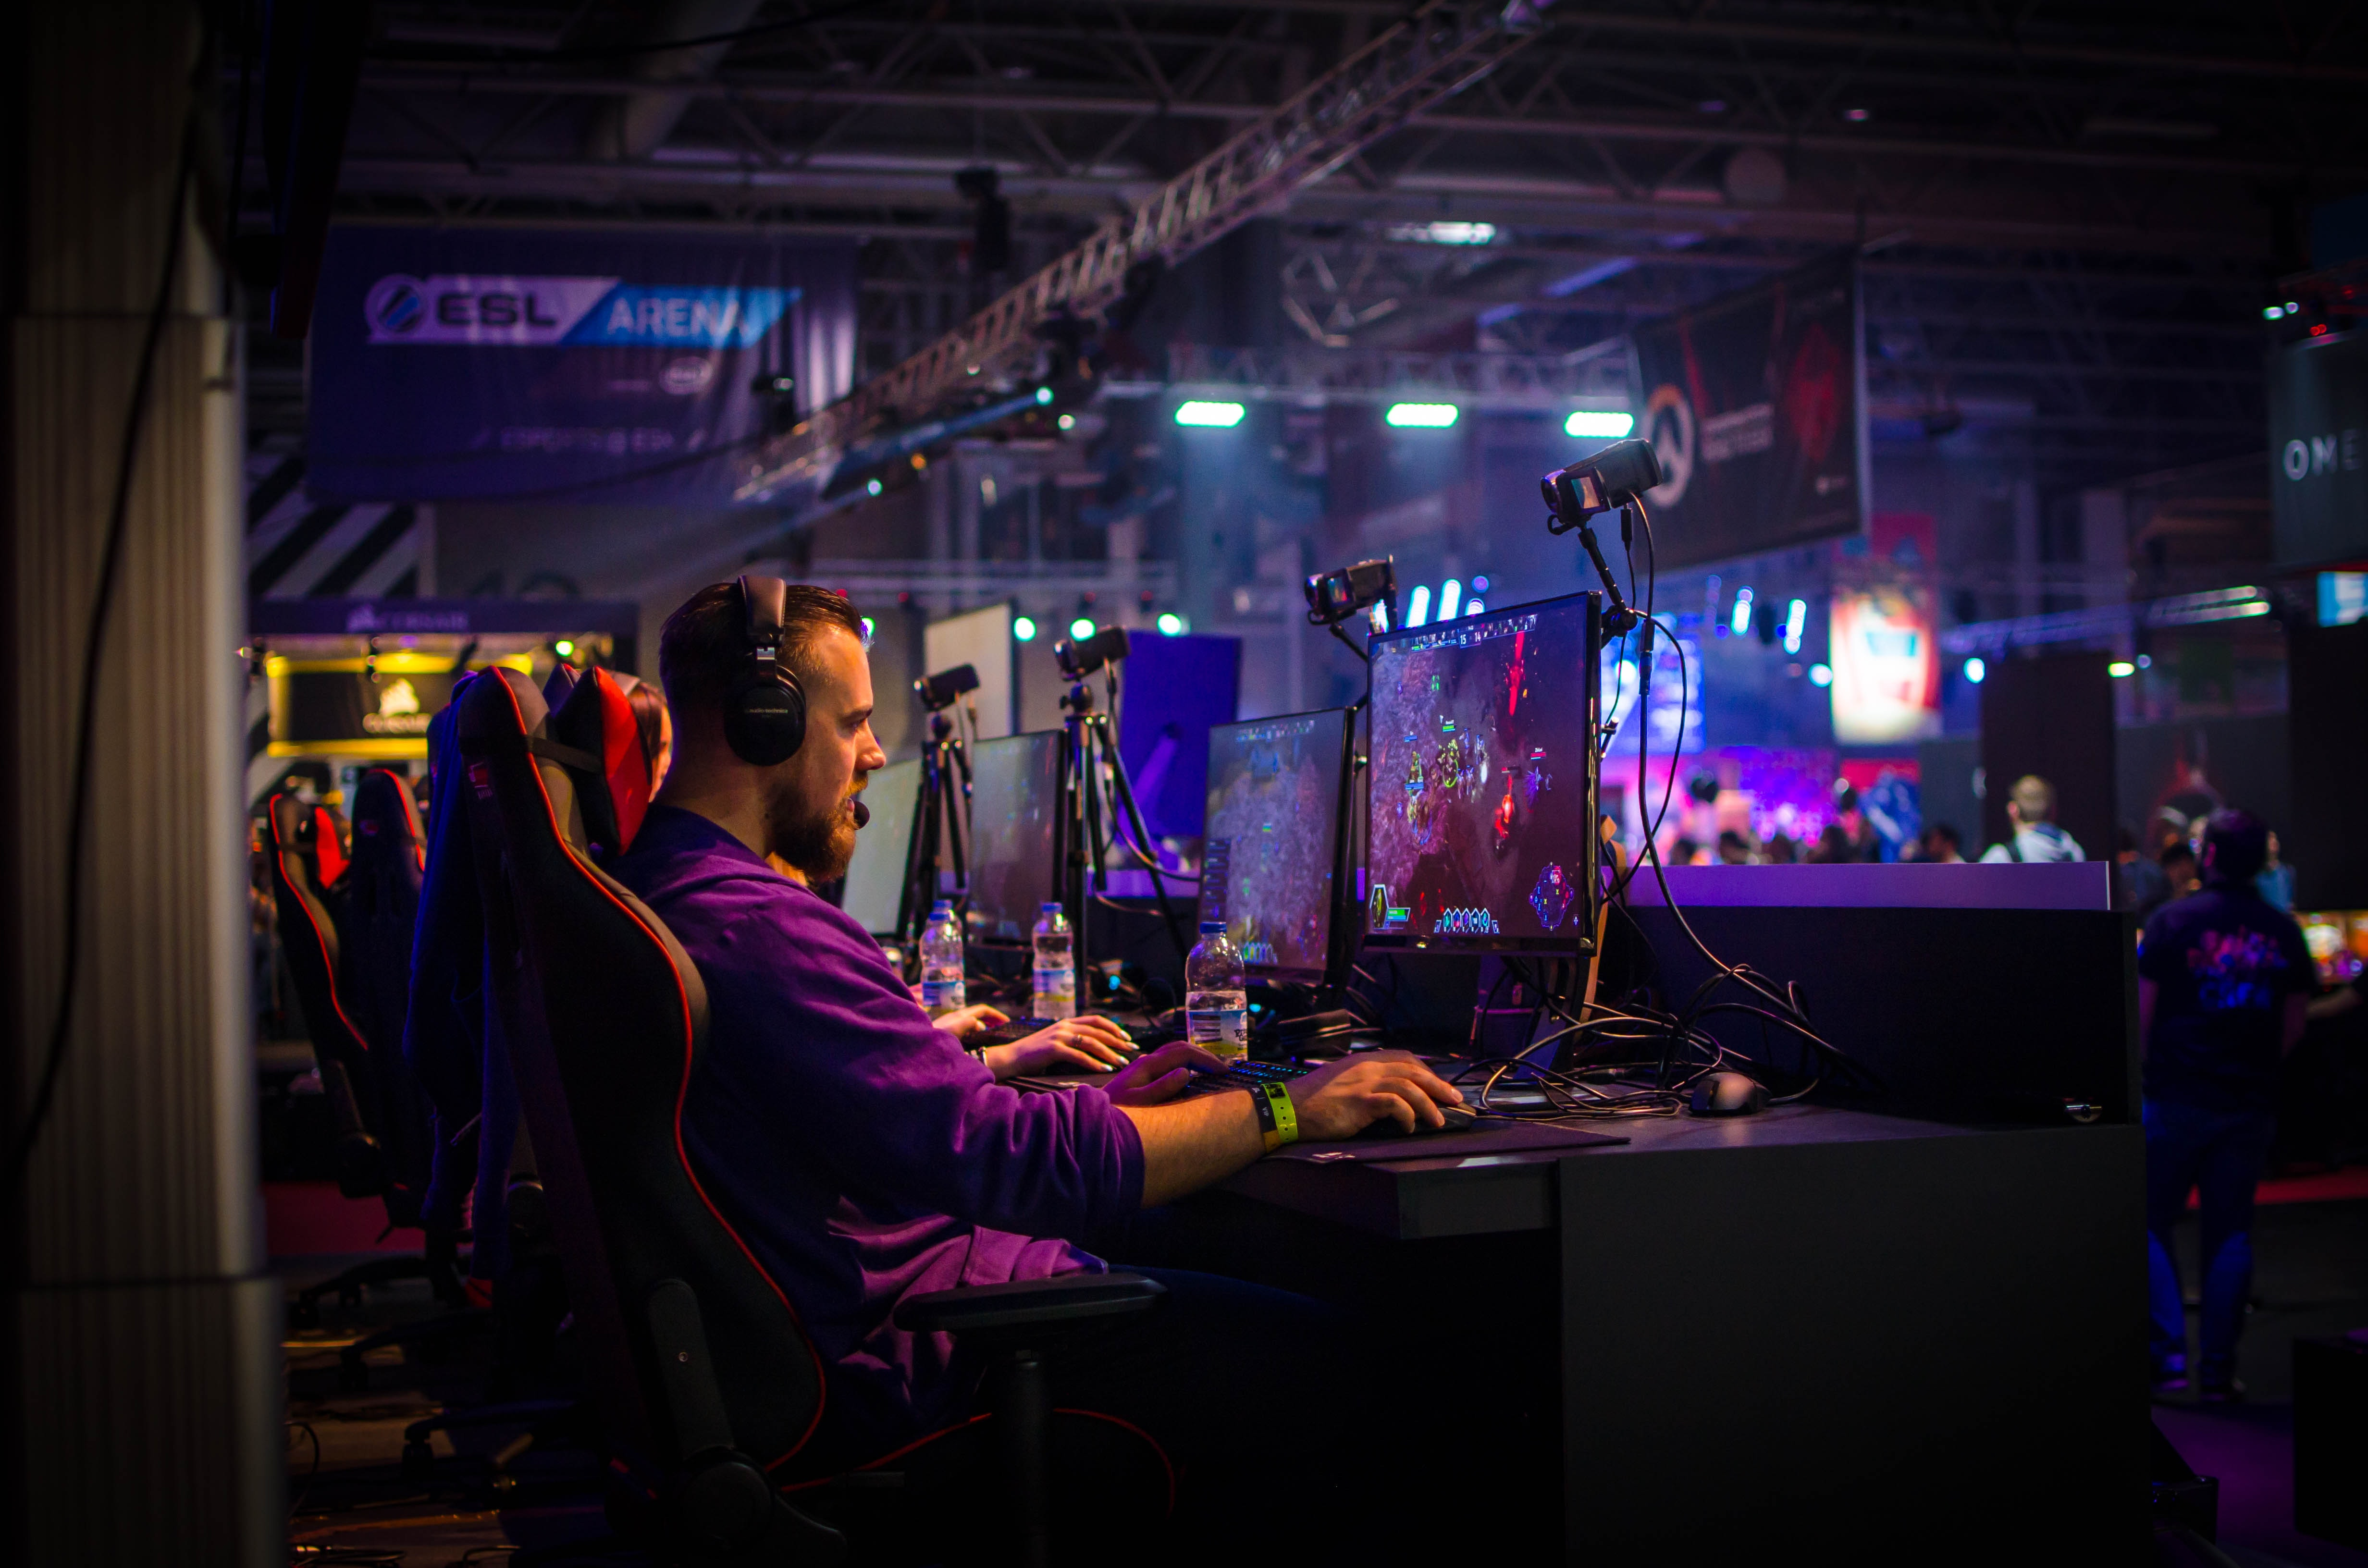 An e-athlete competes in an esports tournament held at a dedicated esports arena